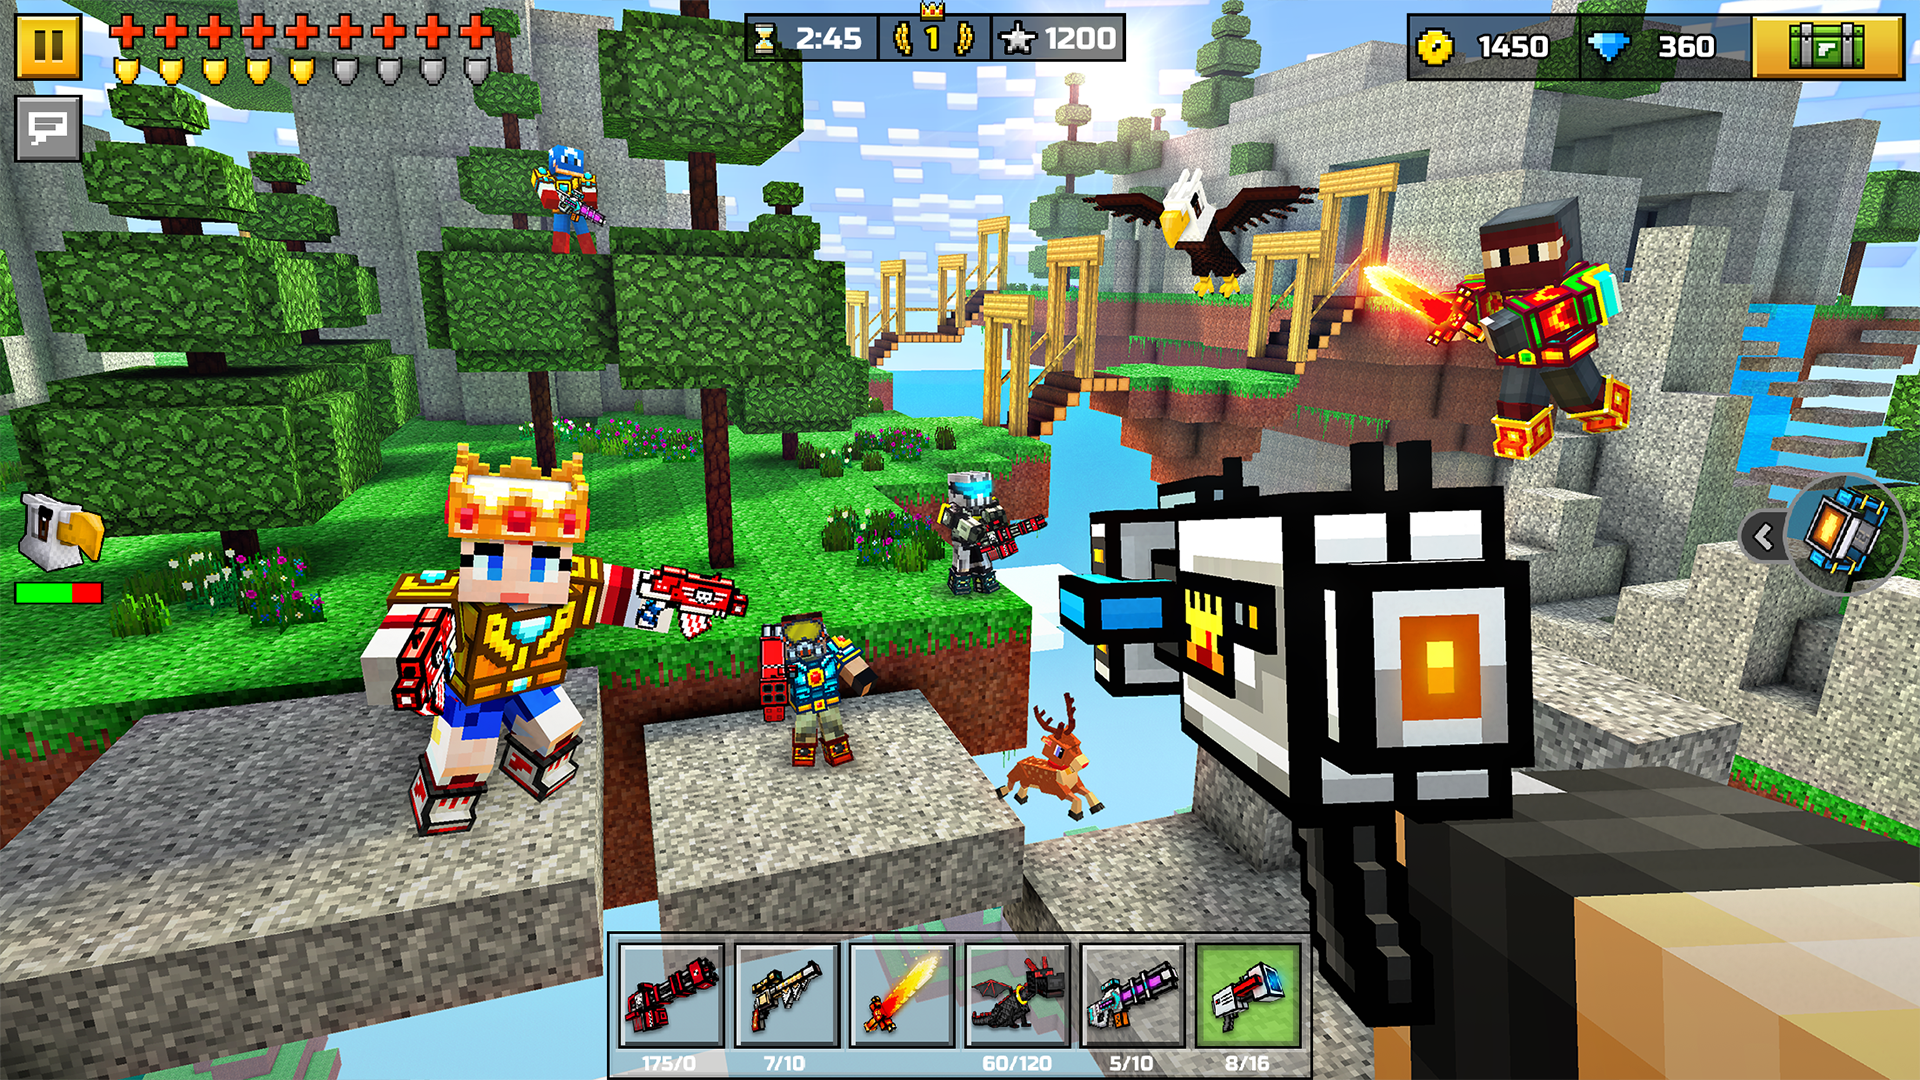 Amazoncom Pixel Gun D Pocket Edition Multiplayer Shooter With - Minecraft 2d spielen ohne download